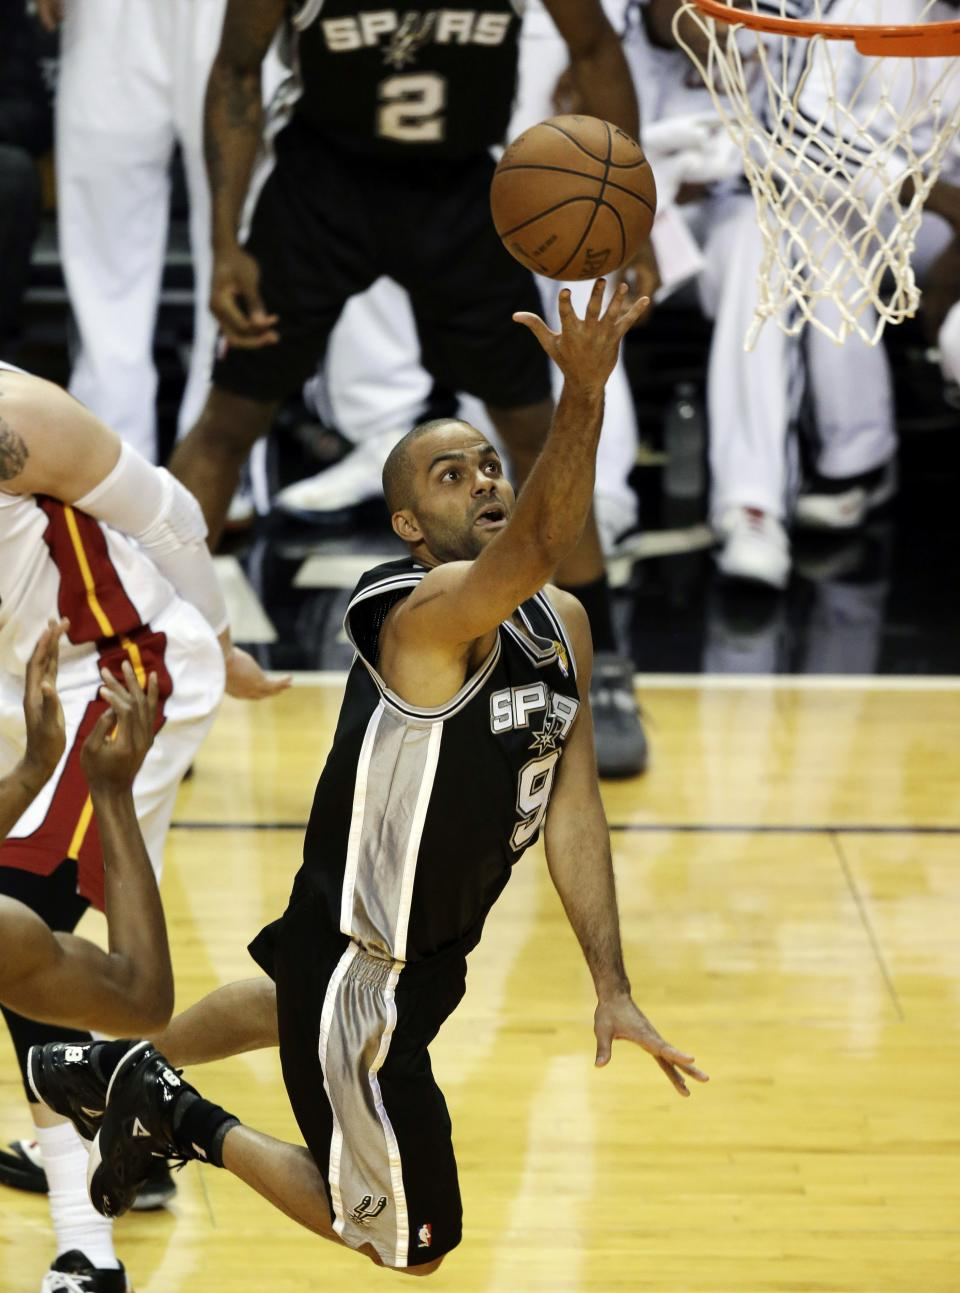 San Antonio Spurs guard Tony Parker (9) drives to the basket during the first half of Game 6 in their NBA Finals basketball series against the Miami Heat, Tuesday, June 18, 2013 in Miami. (AP Photo/Wilfredo Lee)